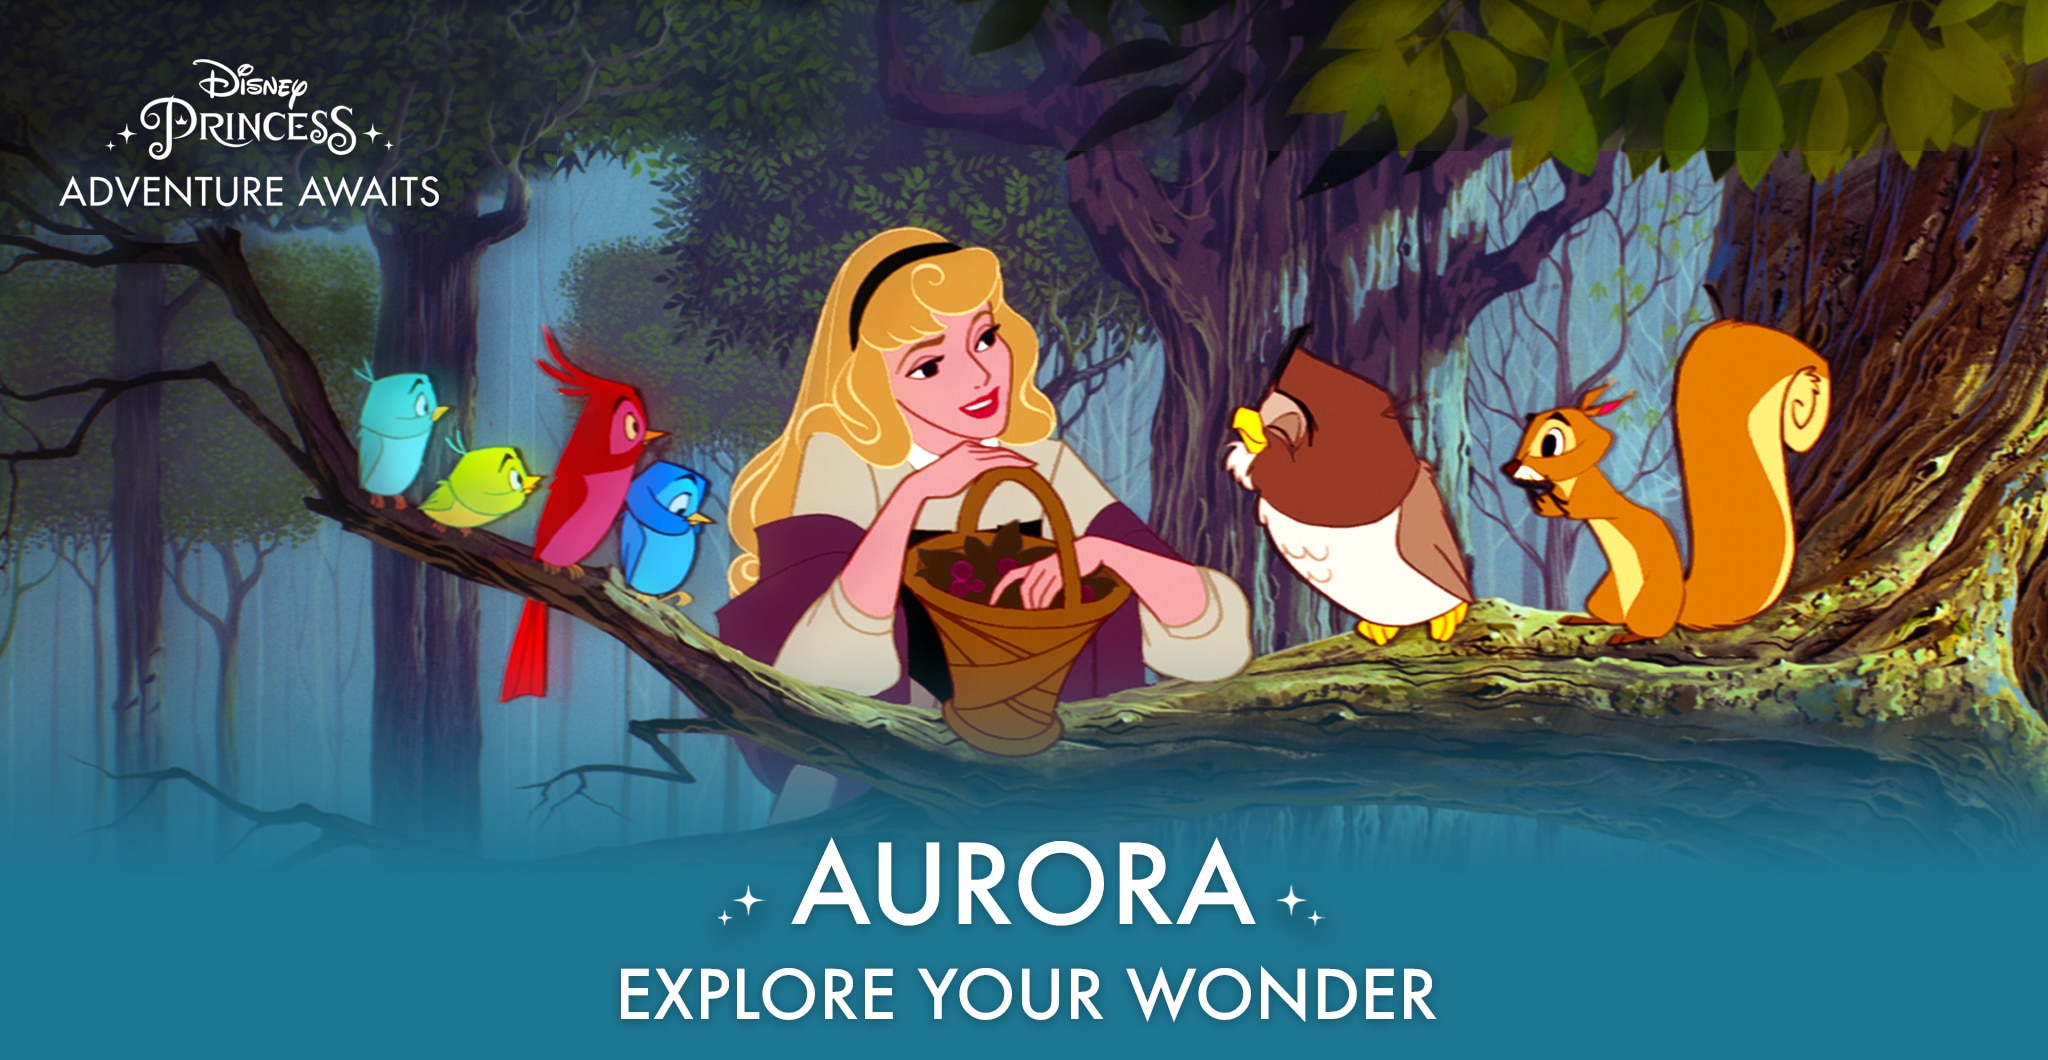 Aurora - Explore Your Wonder